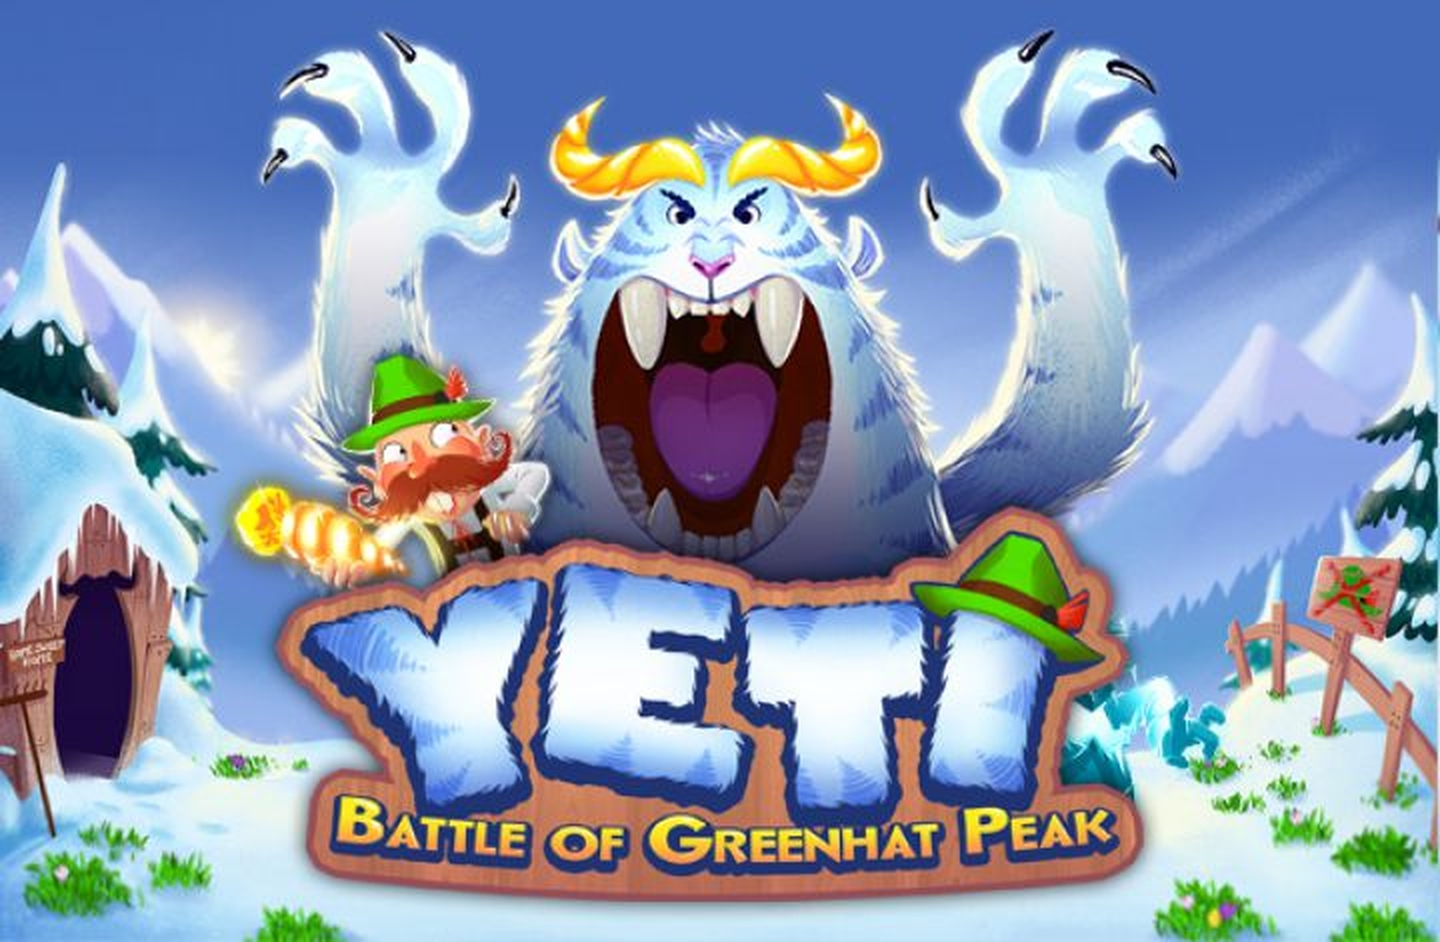 Yeti Battle of Greenhat Peak Online Slot Demo Game by Thunderkick